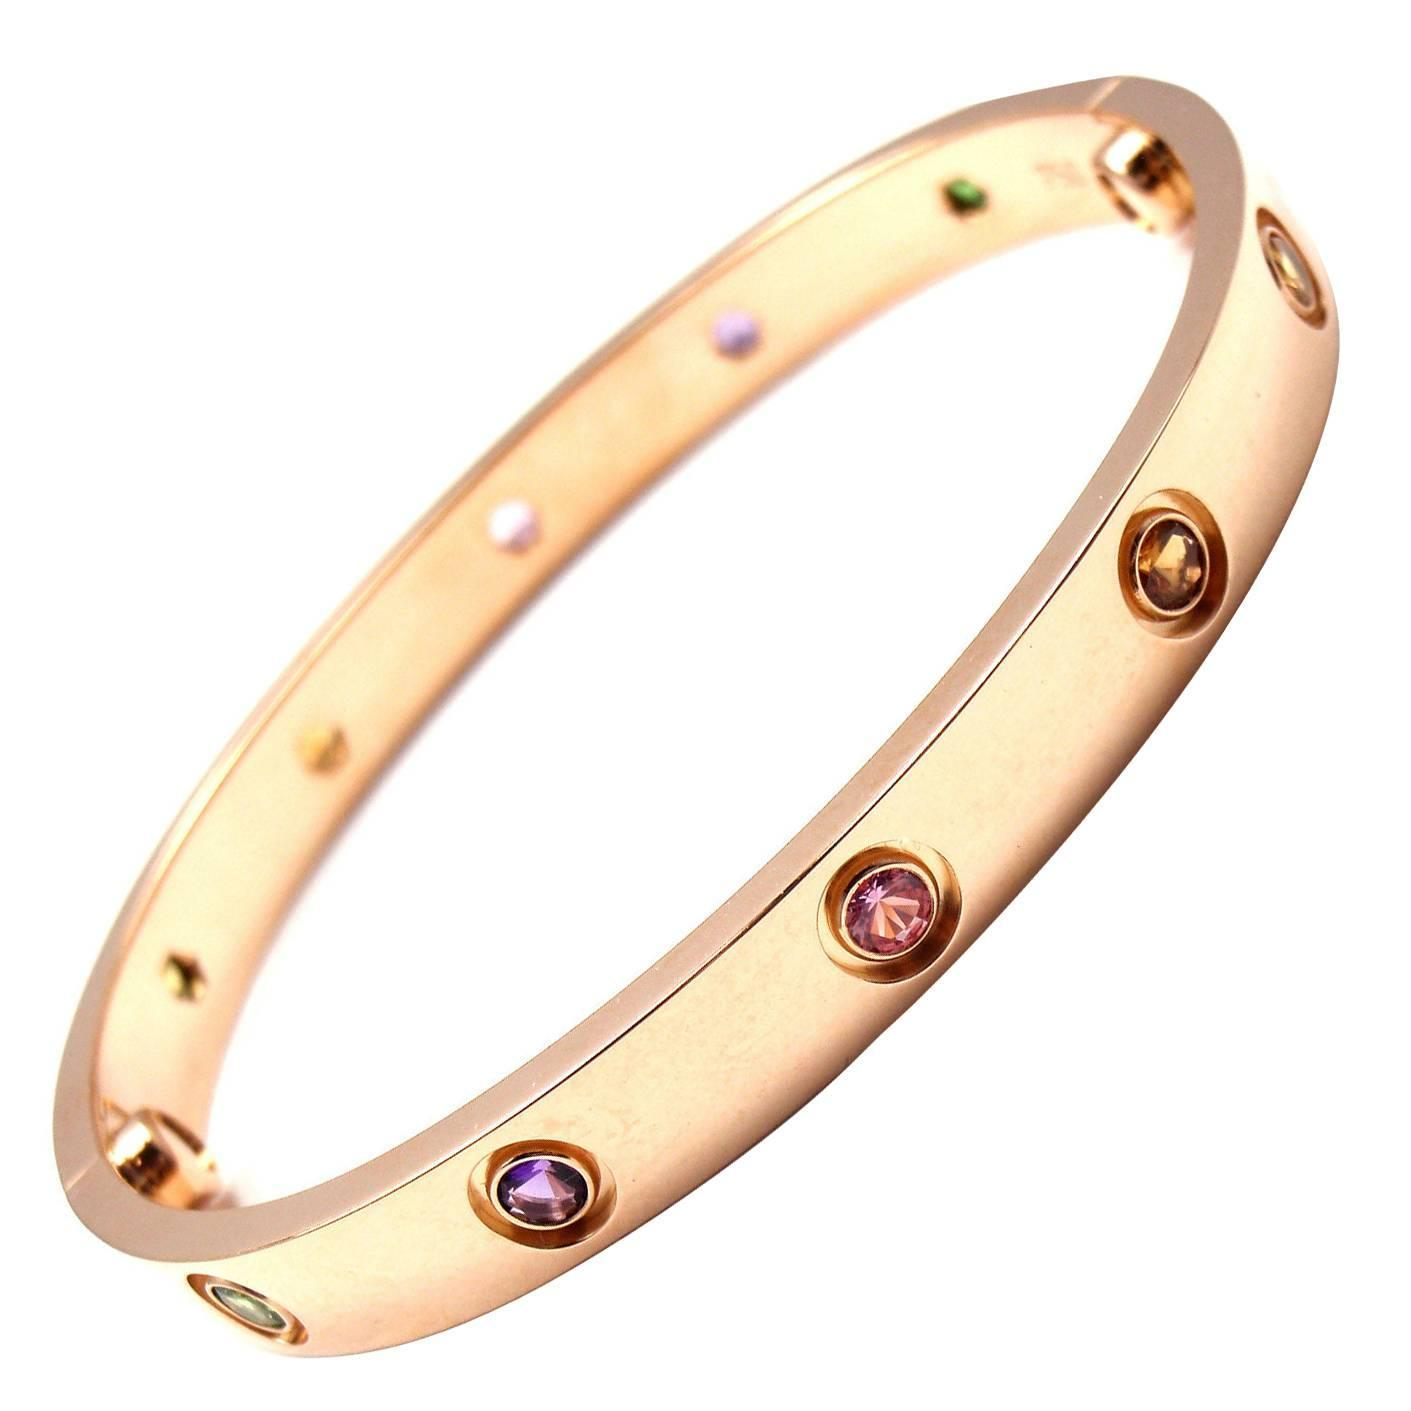 gold yellow product slave love bracelet bangles exquisite style inc cartier bangle designs solid